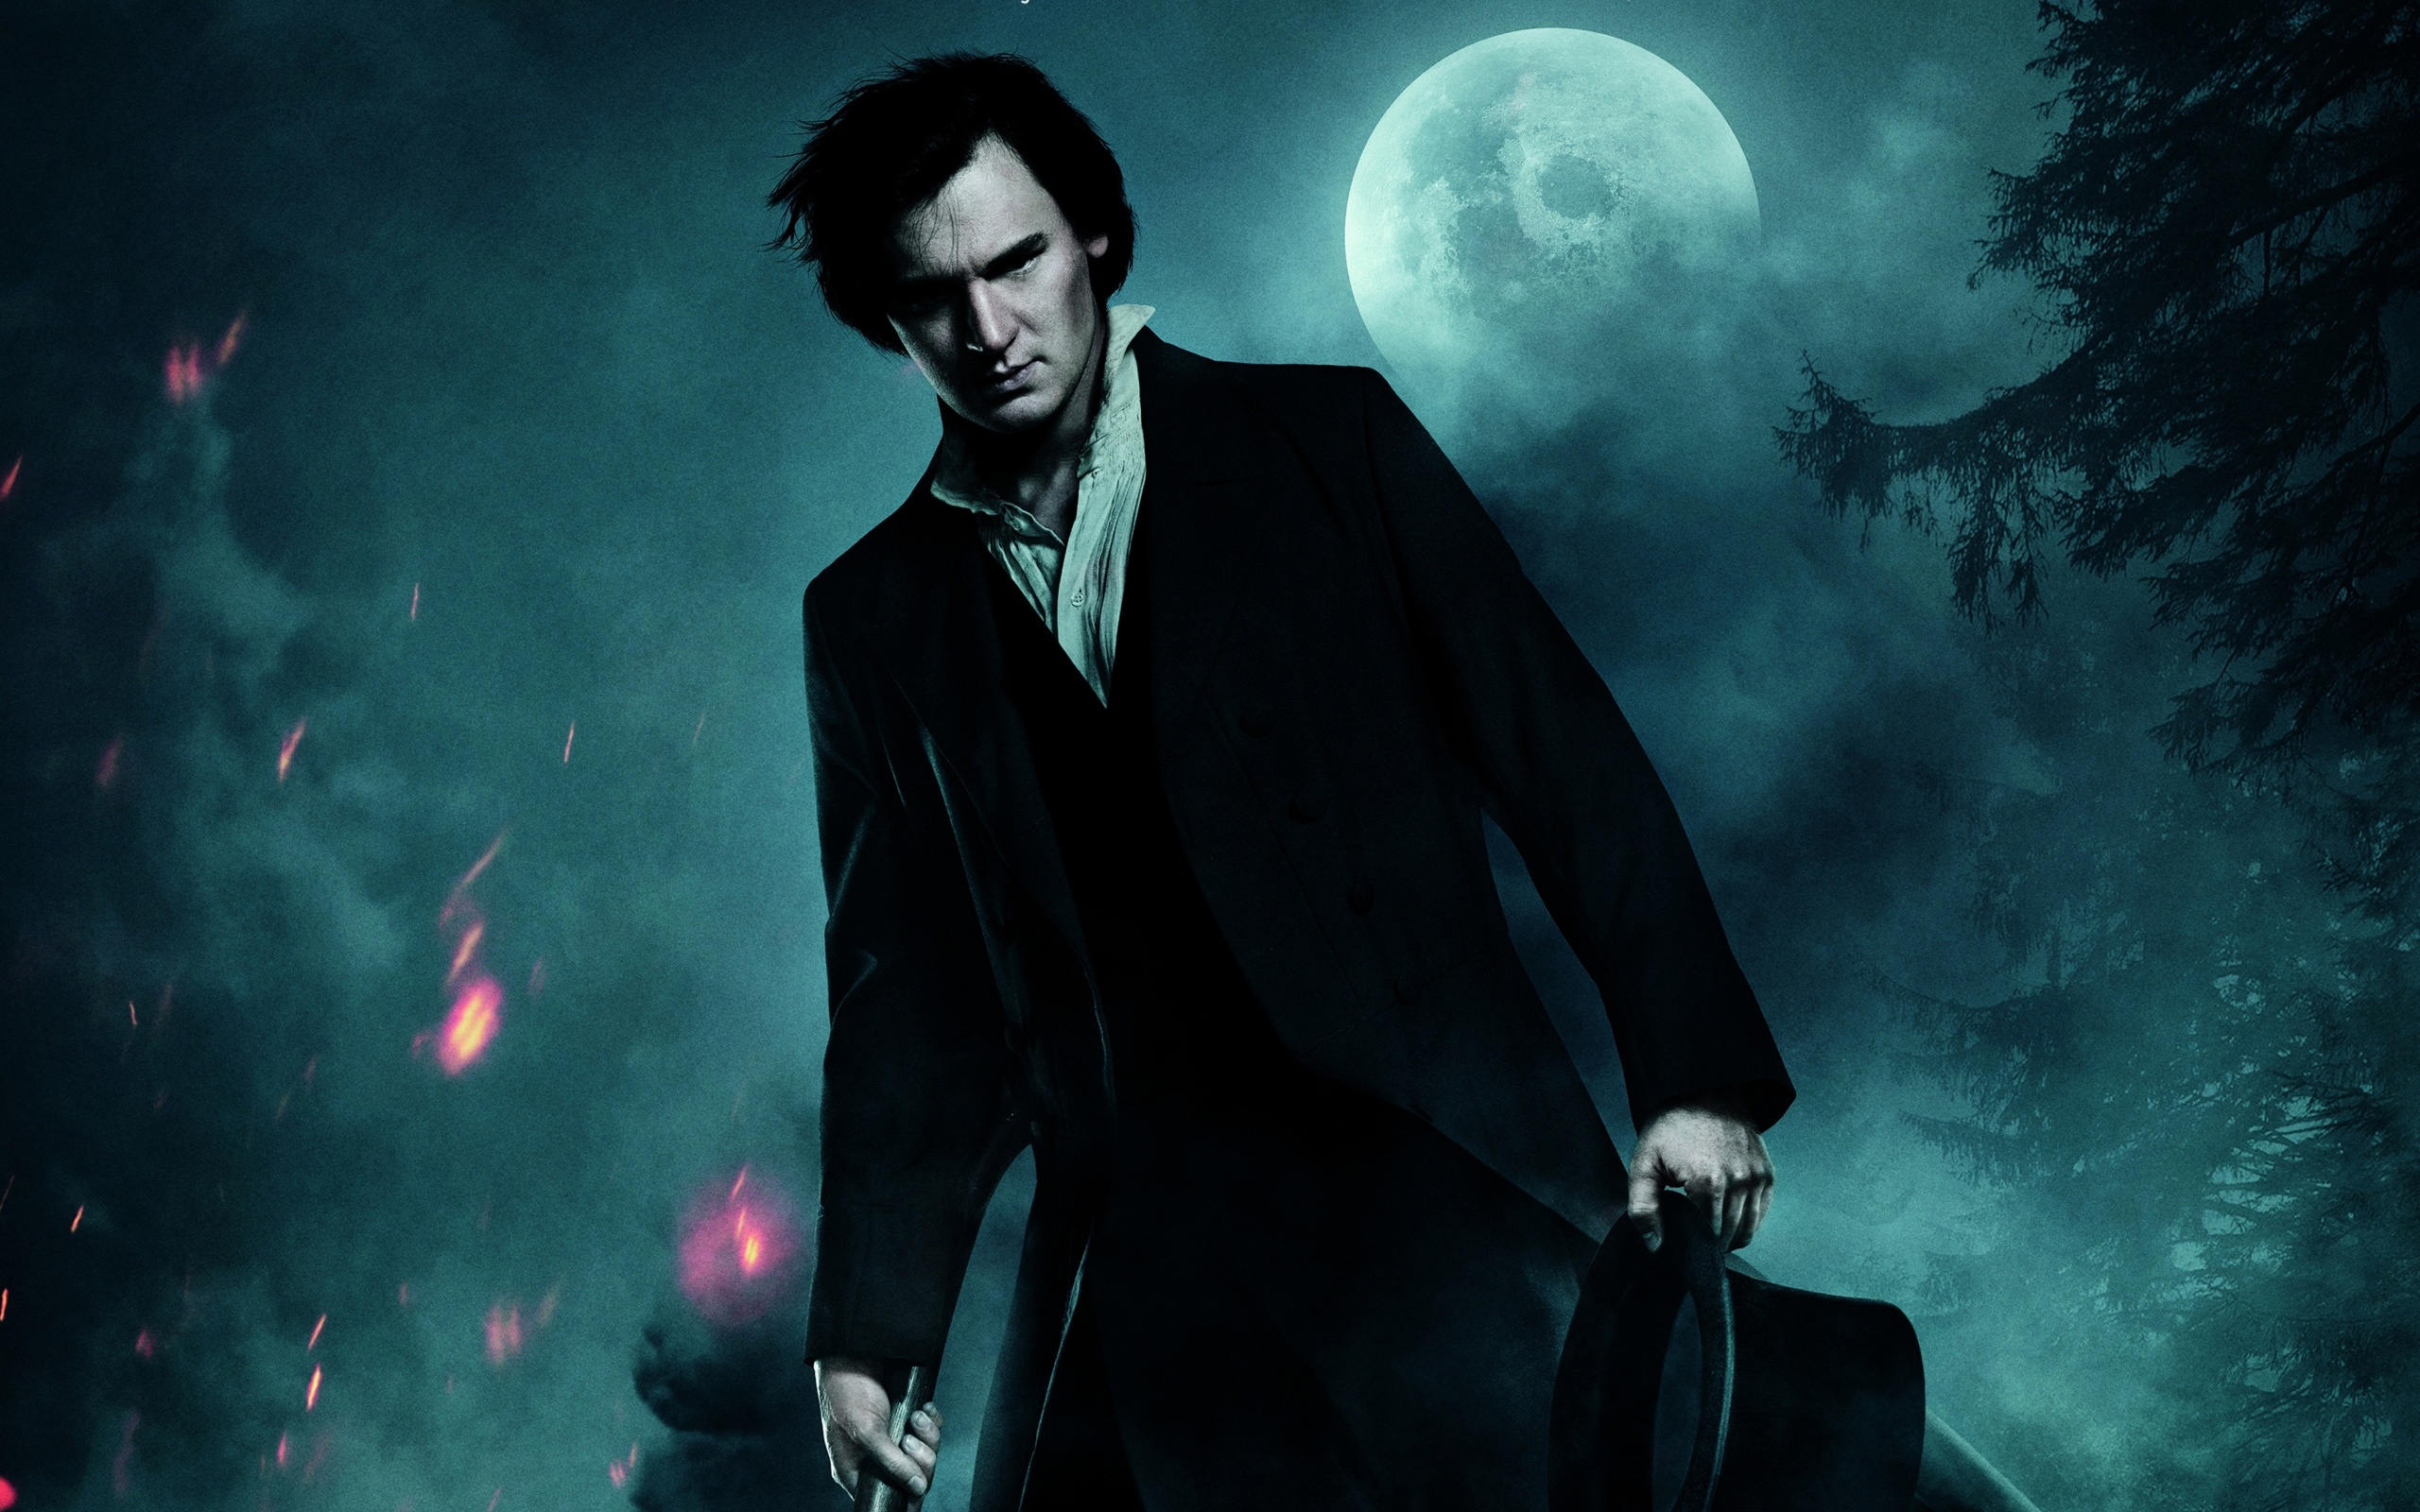 Wallpaper Abraham Lincoln Vampire Hunter Hd 2560x1600 Hd